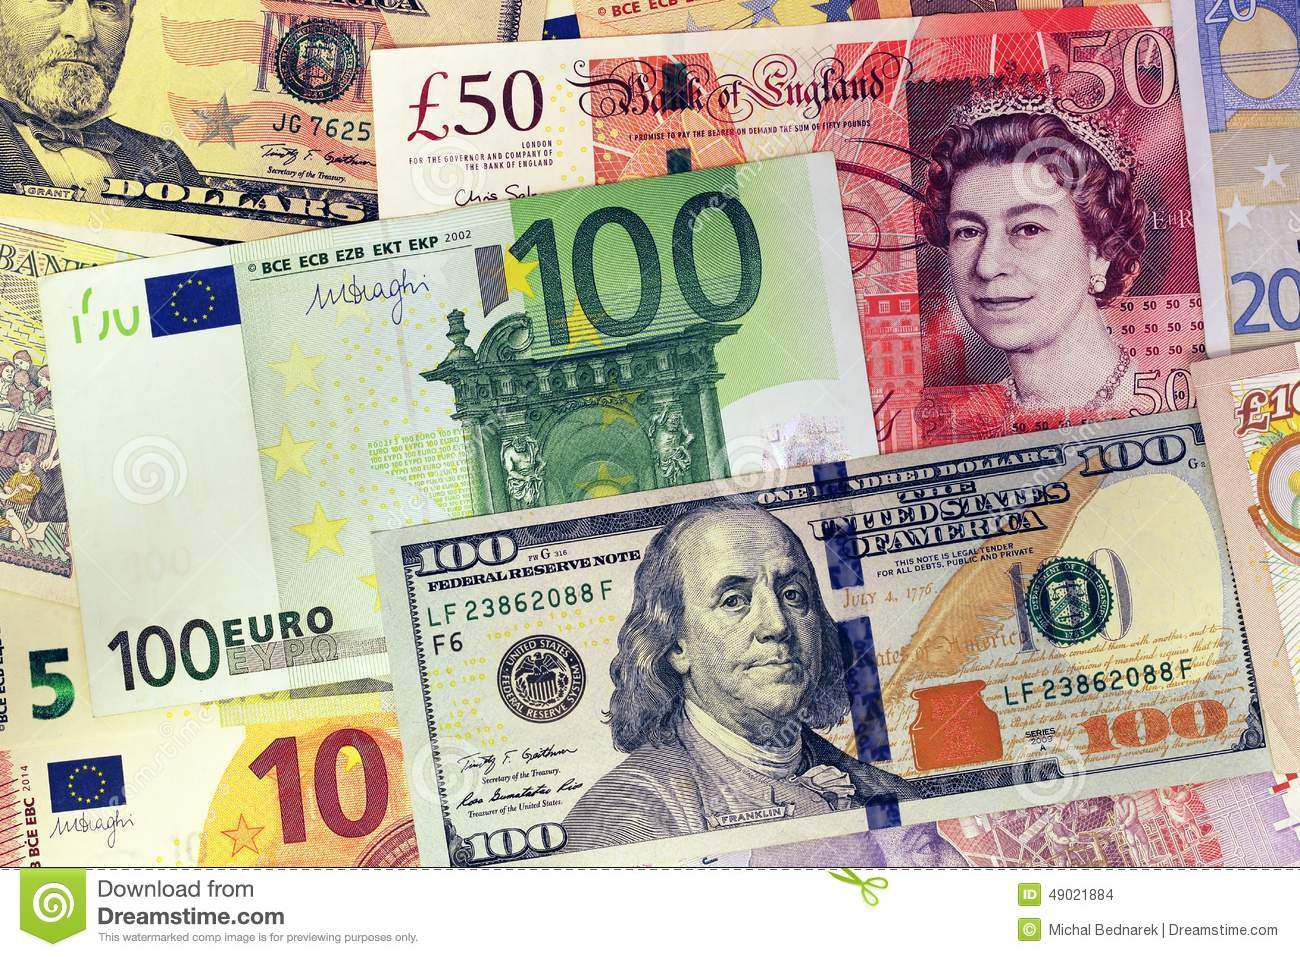 1 Libra Equivale A Euros Mix Of Currencies Banknotes Dollar Pound Sterling Euro